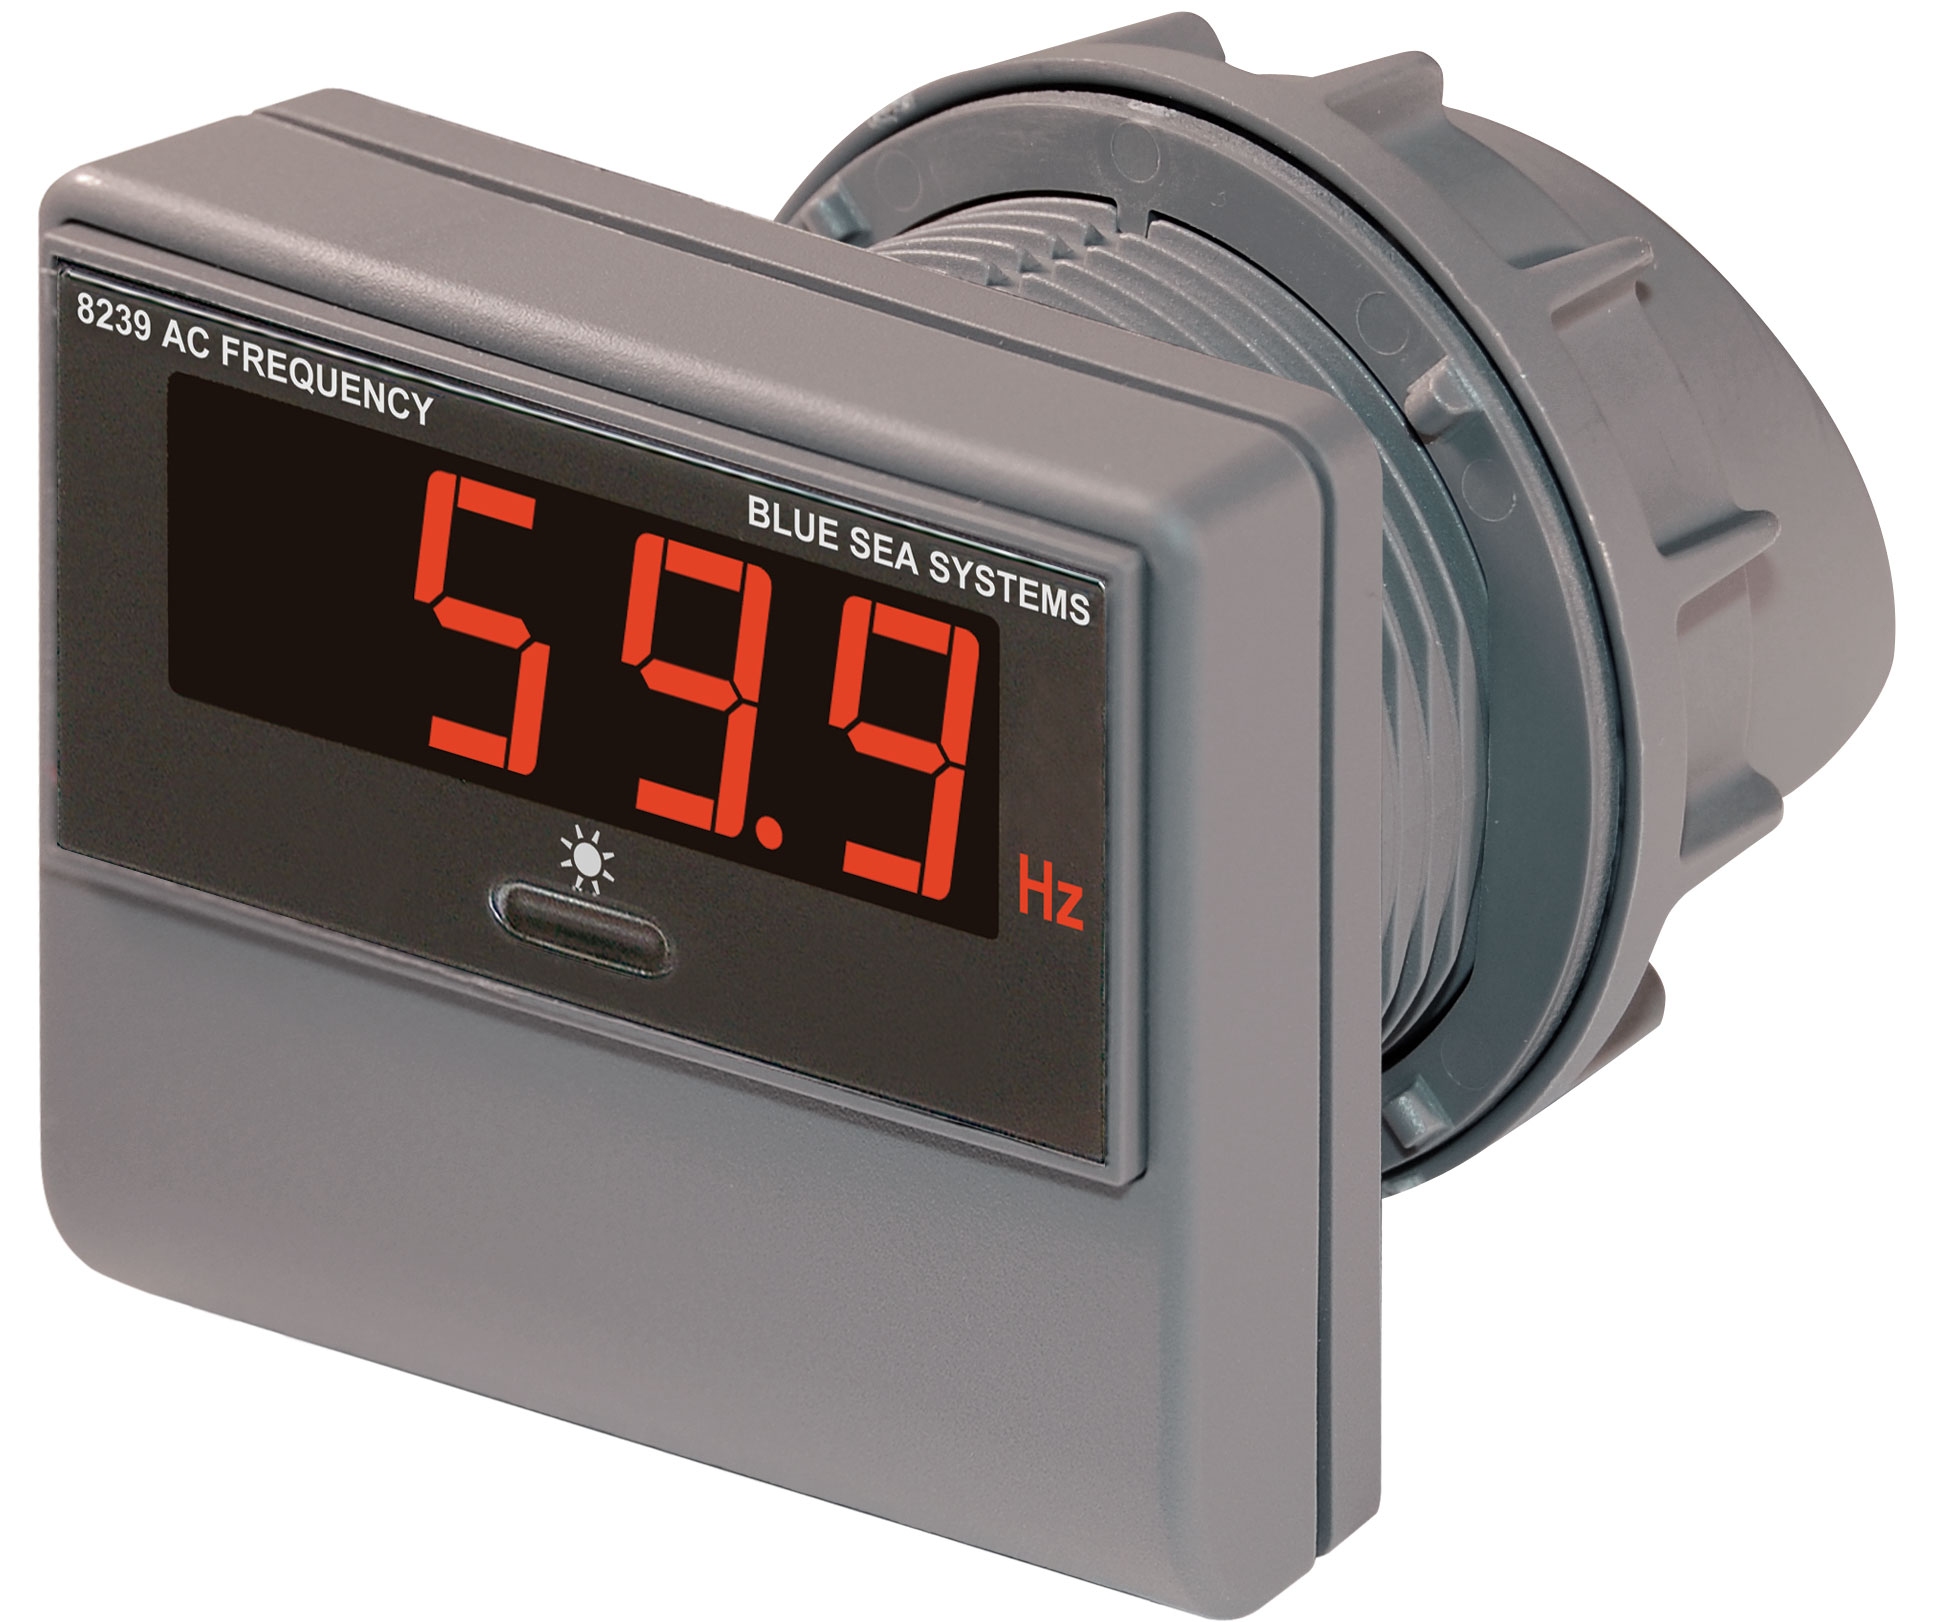 Hertz Frequency Meter : Ac digital frequency meter to hertz blue sea systems